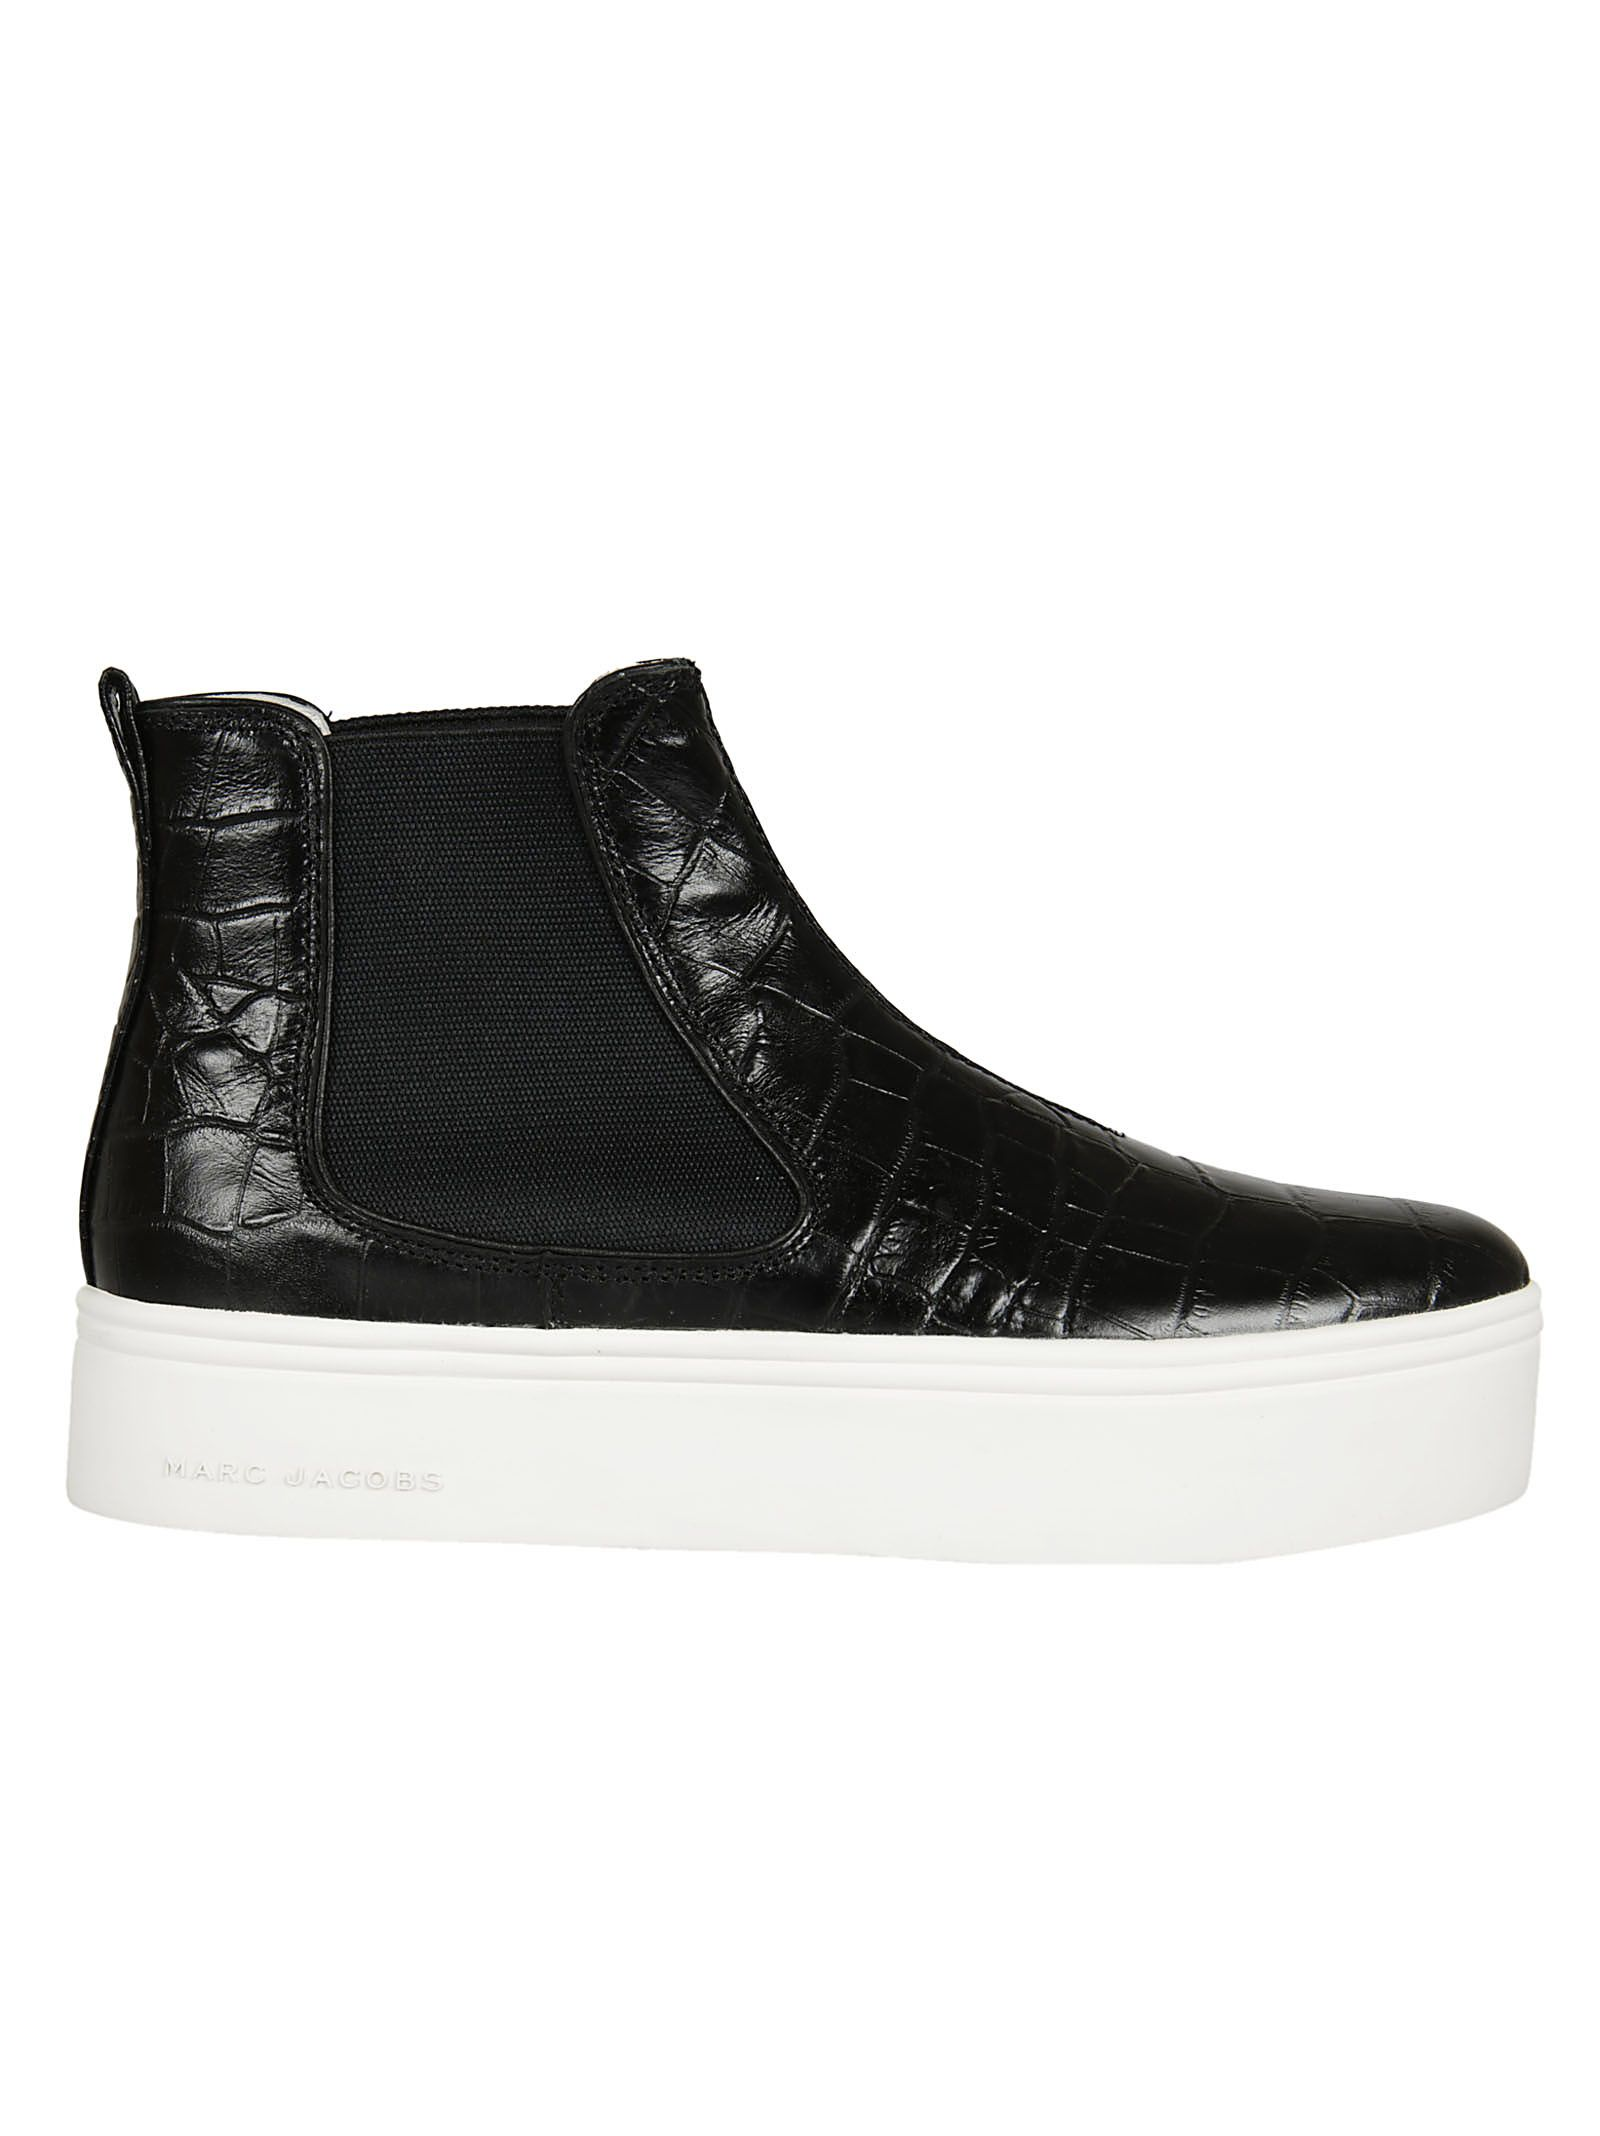 Marc Jacobs Crocodile Effect Ankle Boots